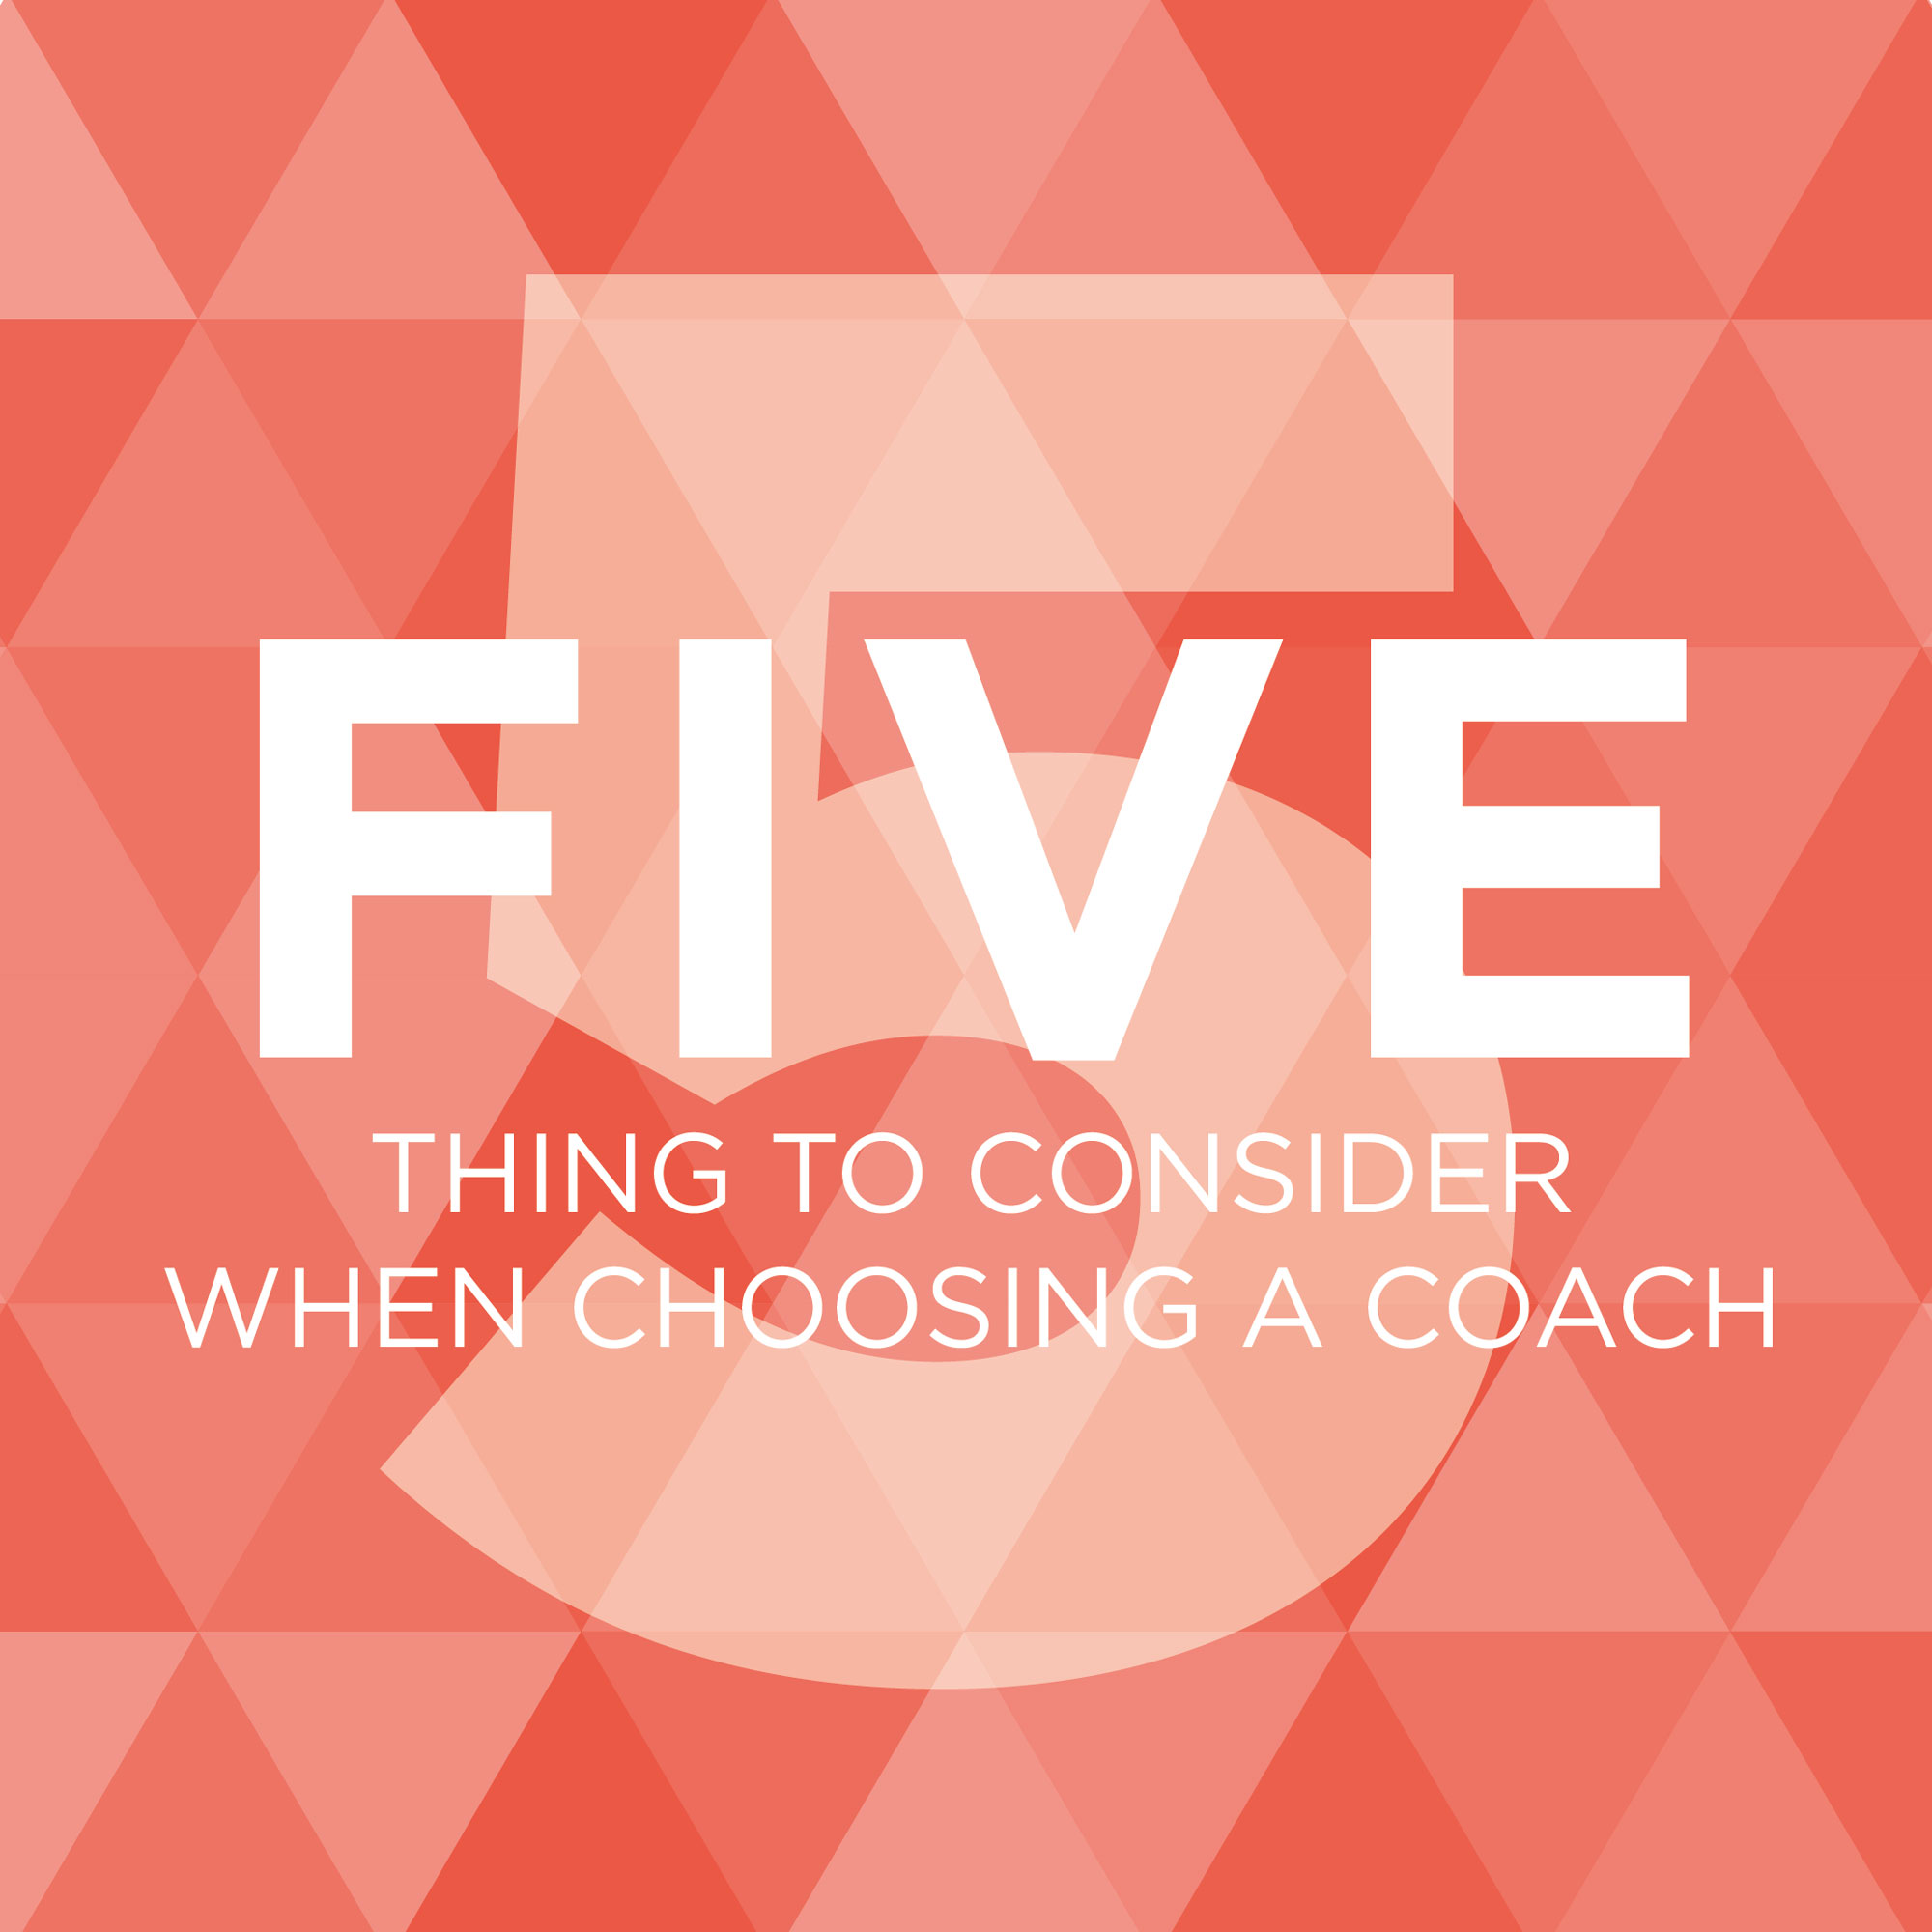 5-Things-to-Consider-when-Choosing-a-Coach.png